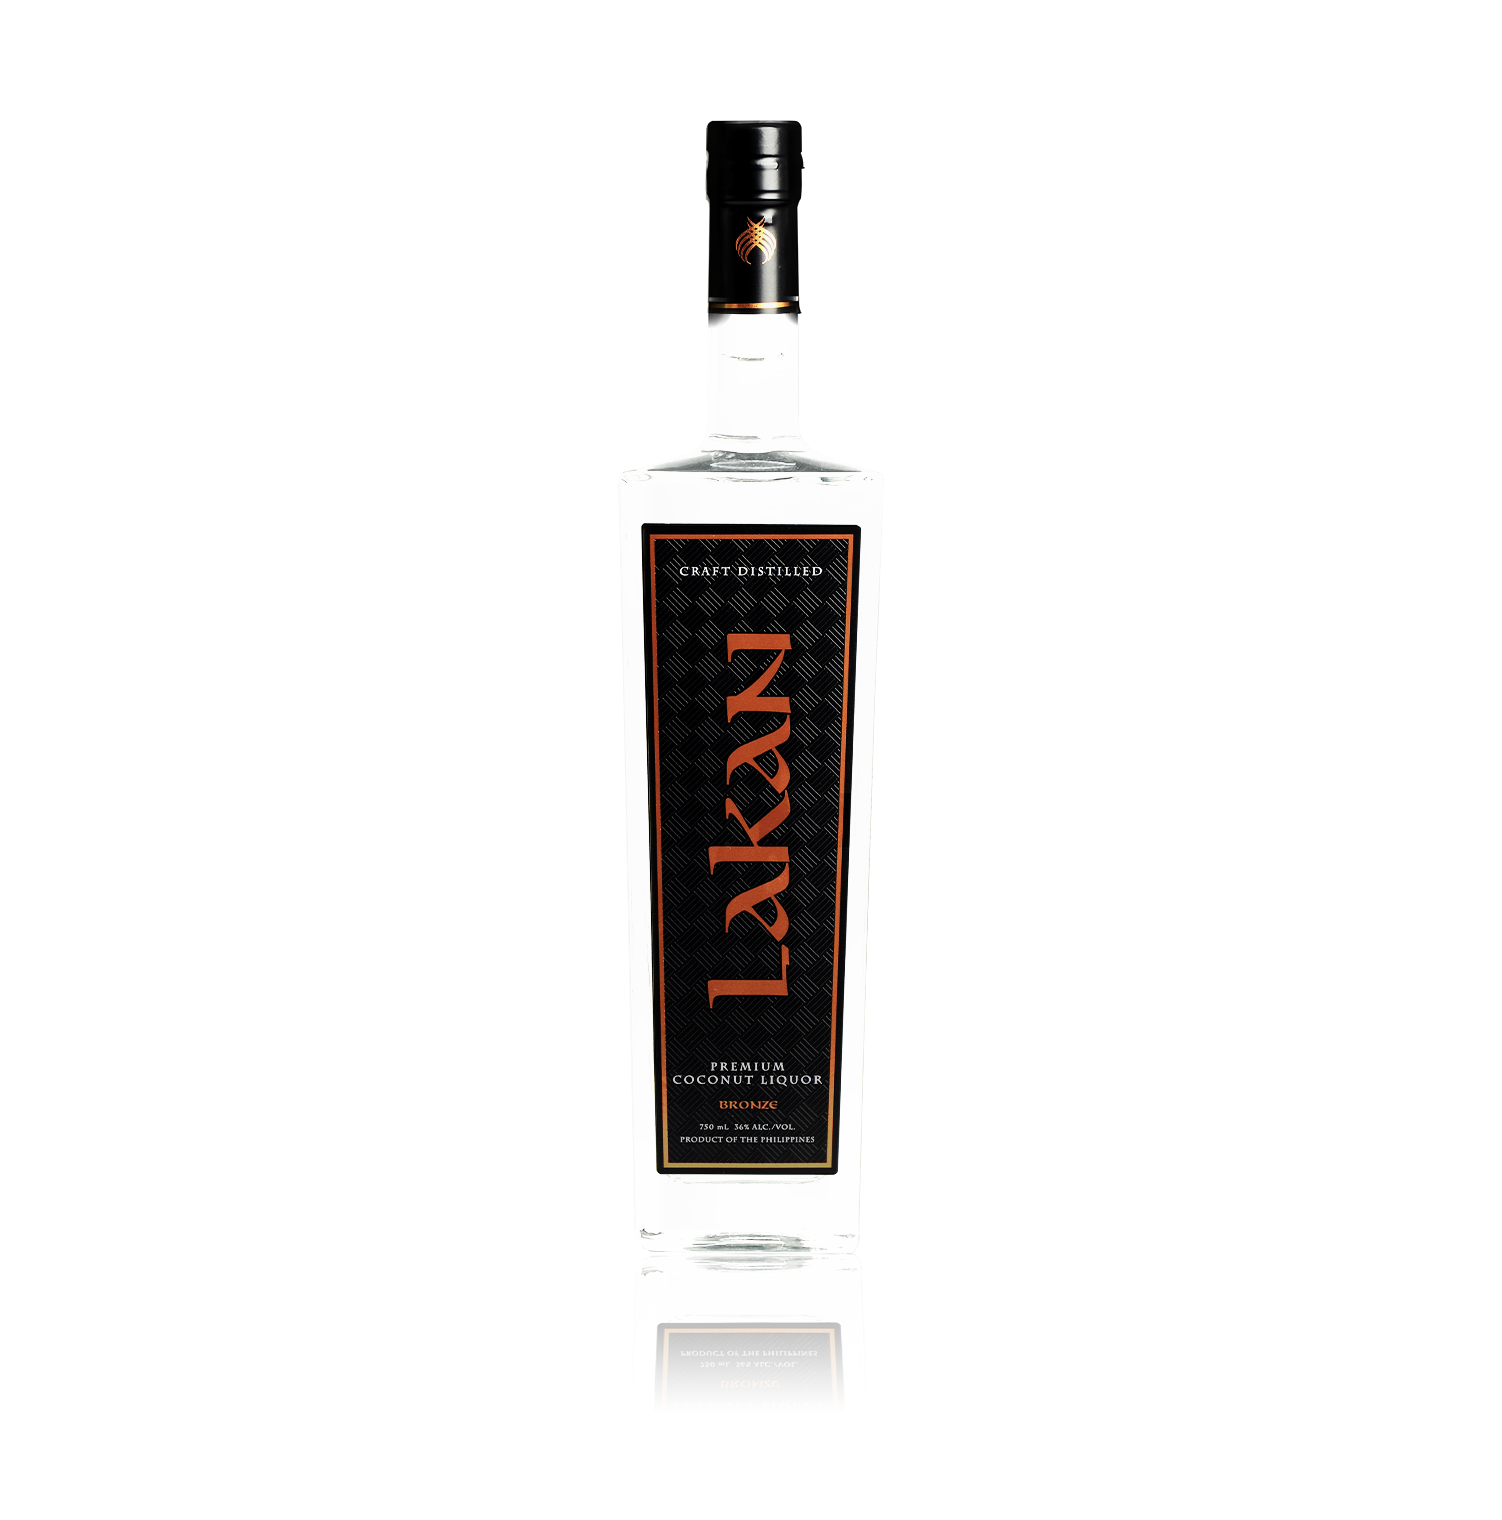 Lakan Bronze is a coconut-based neutral liquor craft distilled by our Master Artisan in small batches. Smooth with a hint of sweetness, this versatile liquor mixes well with fruit, soda or tonic.  Mix it up and have it your way with a bottle of Lakan Premium Lambanog.  36 ABV 750ml 3x column distilled